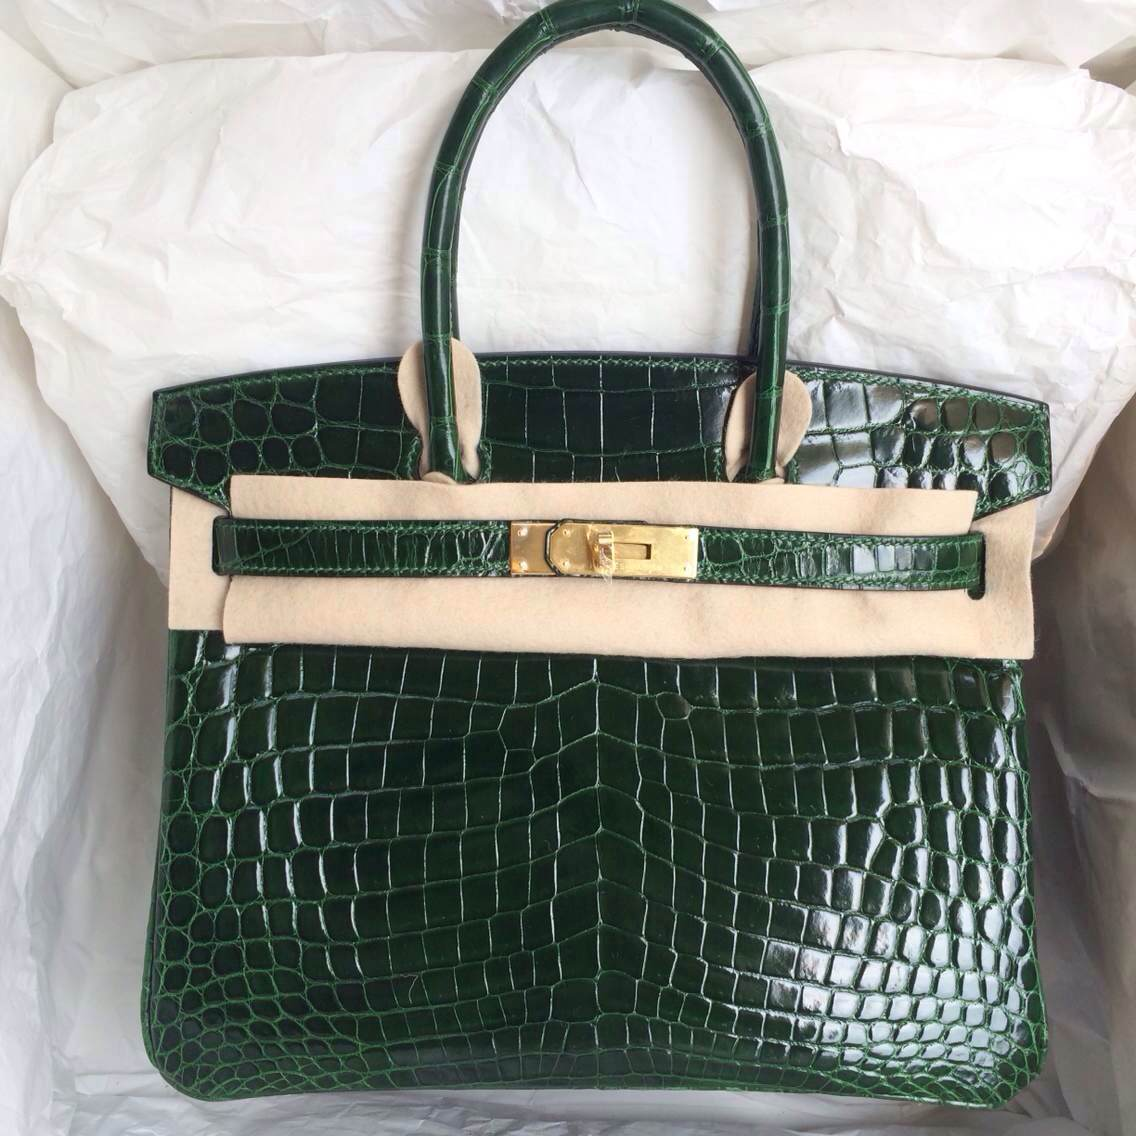 Hermes Purple Birkin Crocodile Skin Fake Birkin Bag Hermes